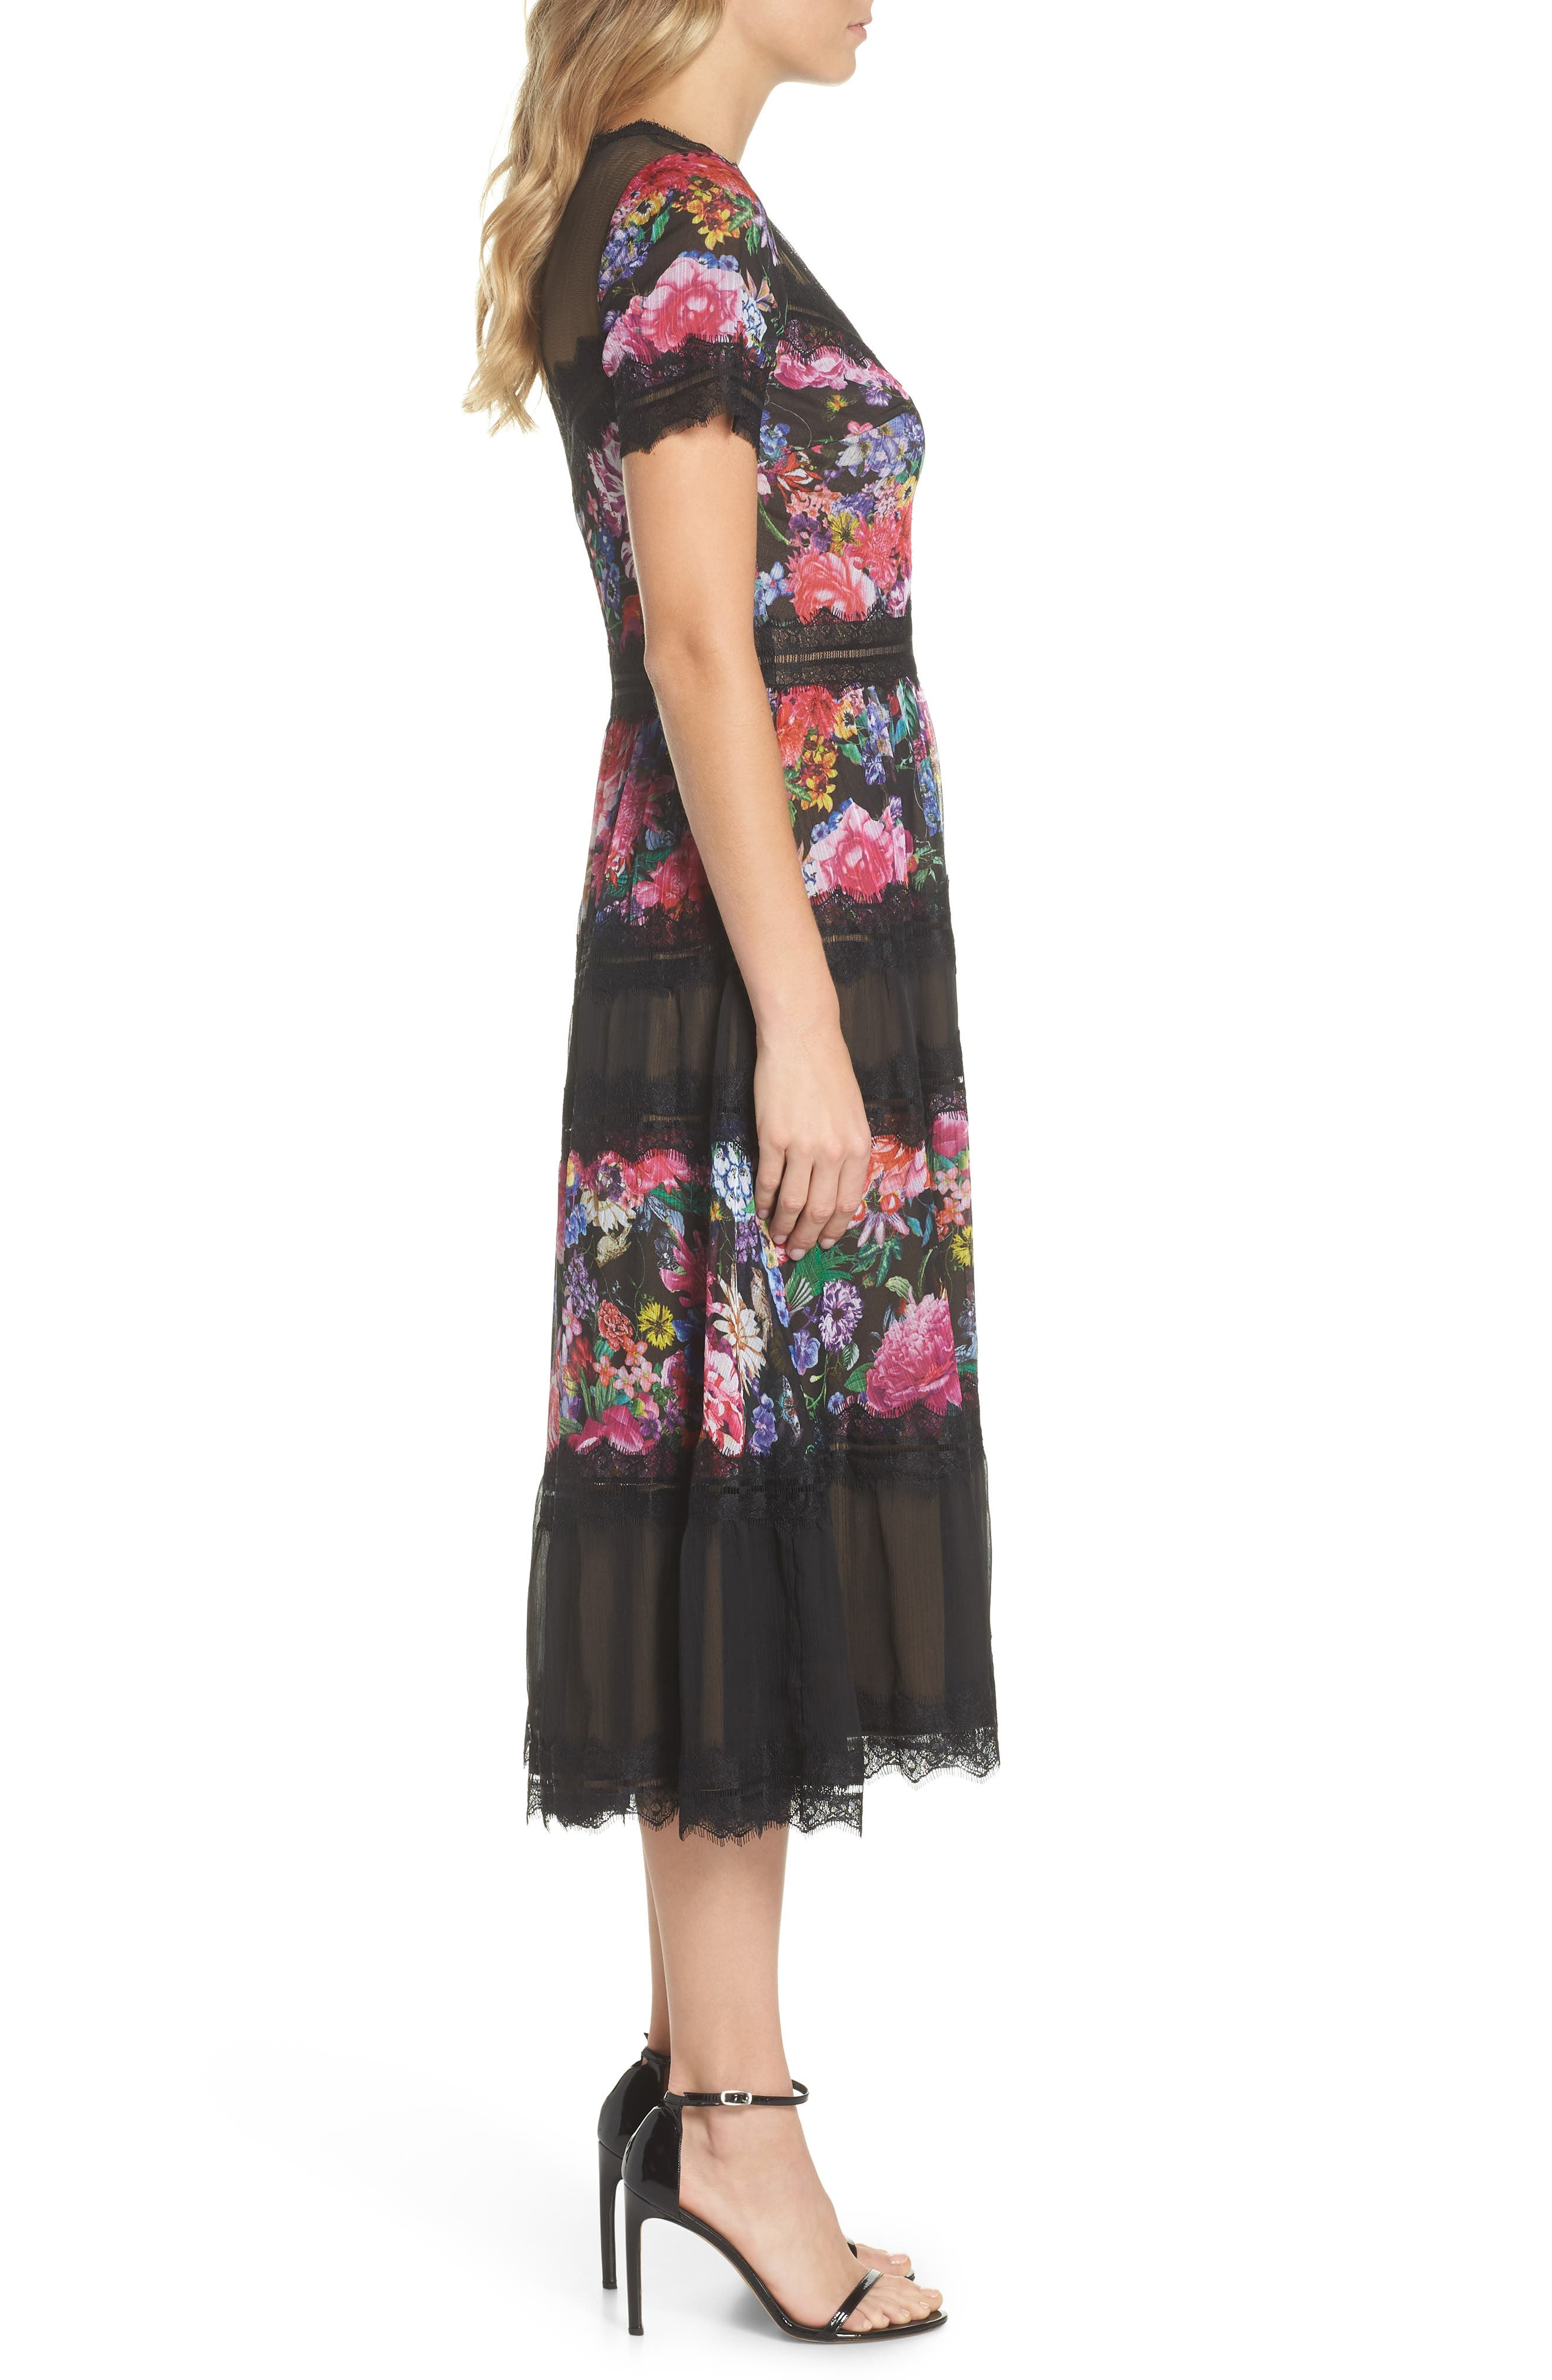 Lace Floral Midi Dress,                             Alternate thumbnail 3, color,                             Black/ Floral